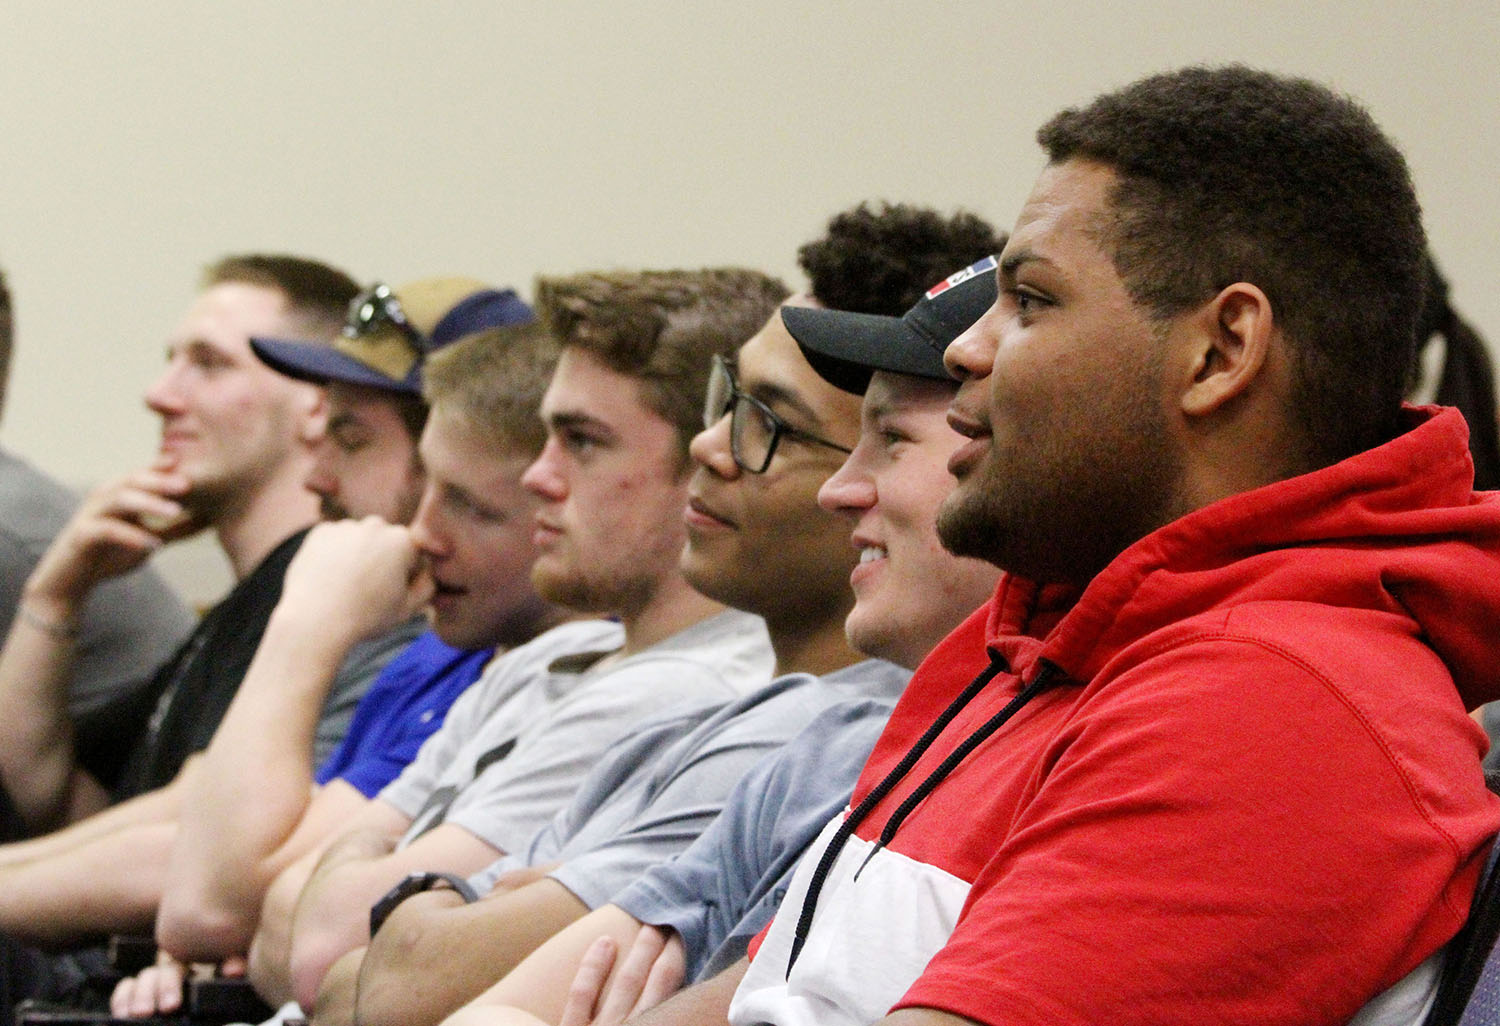 Student-athletes from all 14 UNK sports participated in active bystander training last week. The training teaches students how to identify and safely address potentially harmful behaviors and introduces them to resources available on campus and in the community. (Photo by Tyler Ellyson, UNK Communications)